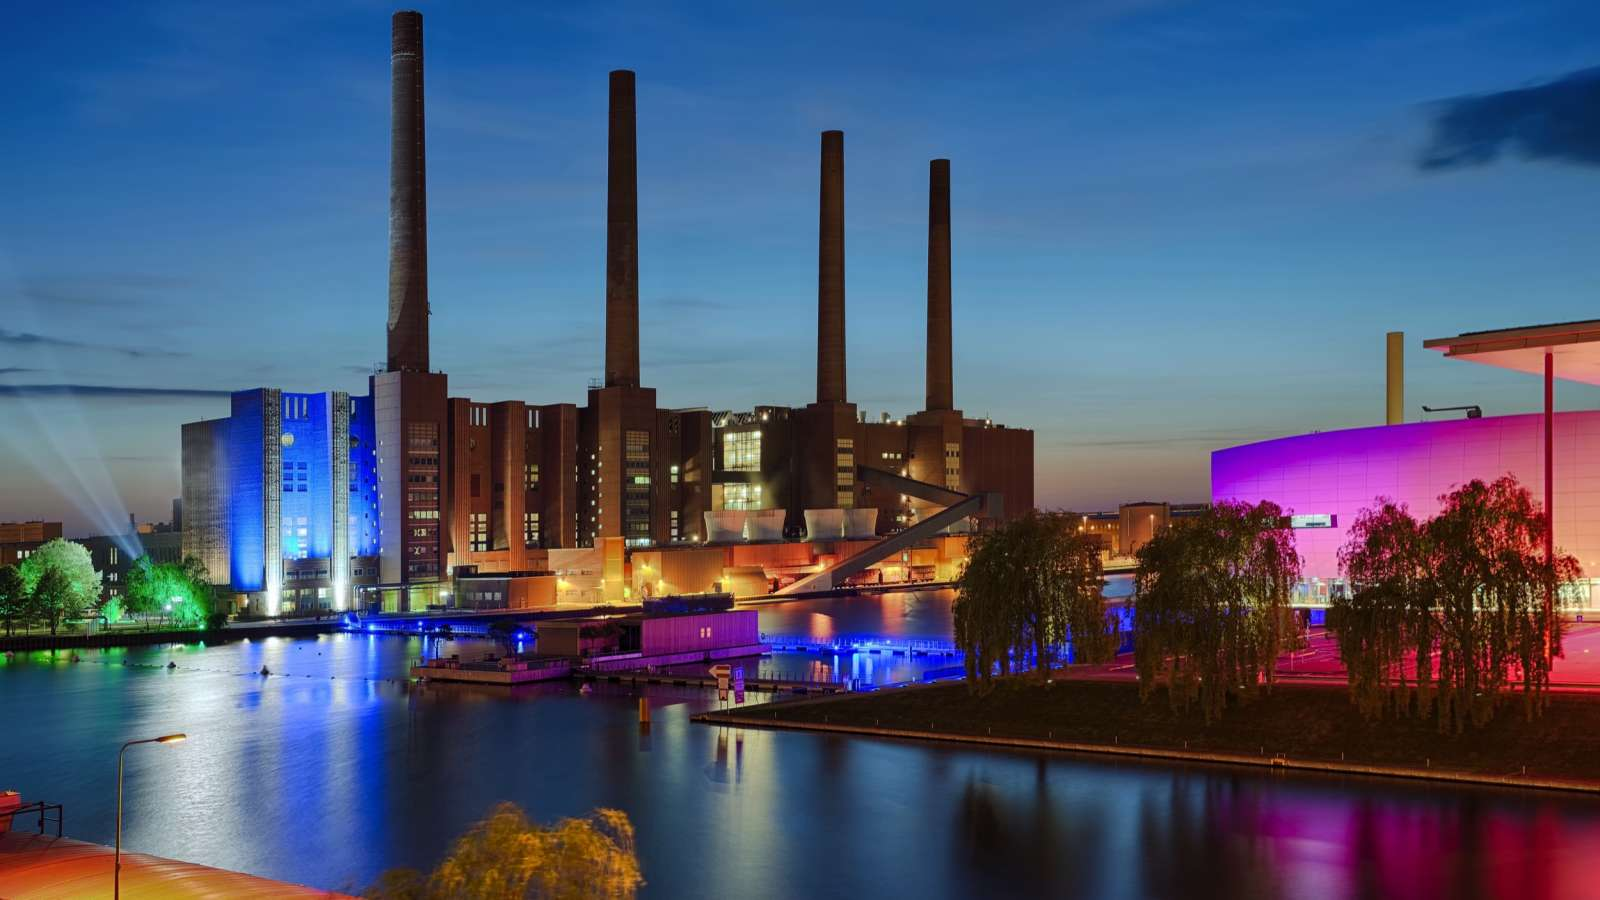 You can reach the VW-Kraftwerk in Wolfsburg in a few minutes by car from Centro Hotel Alter Wolf.